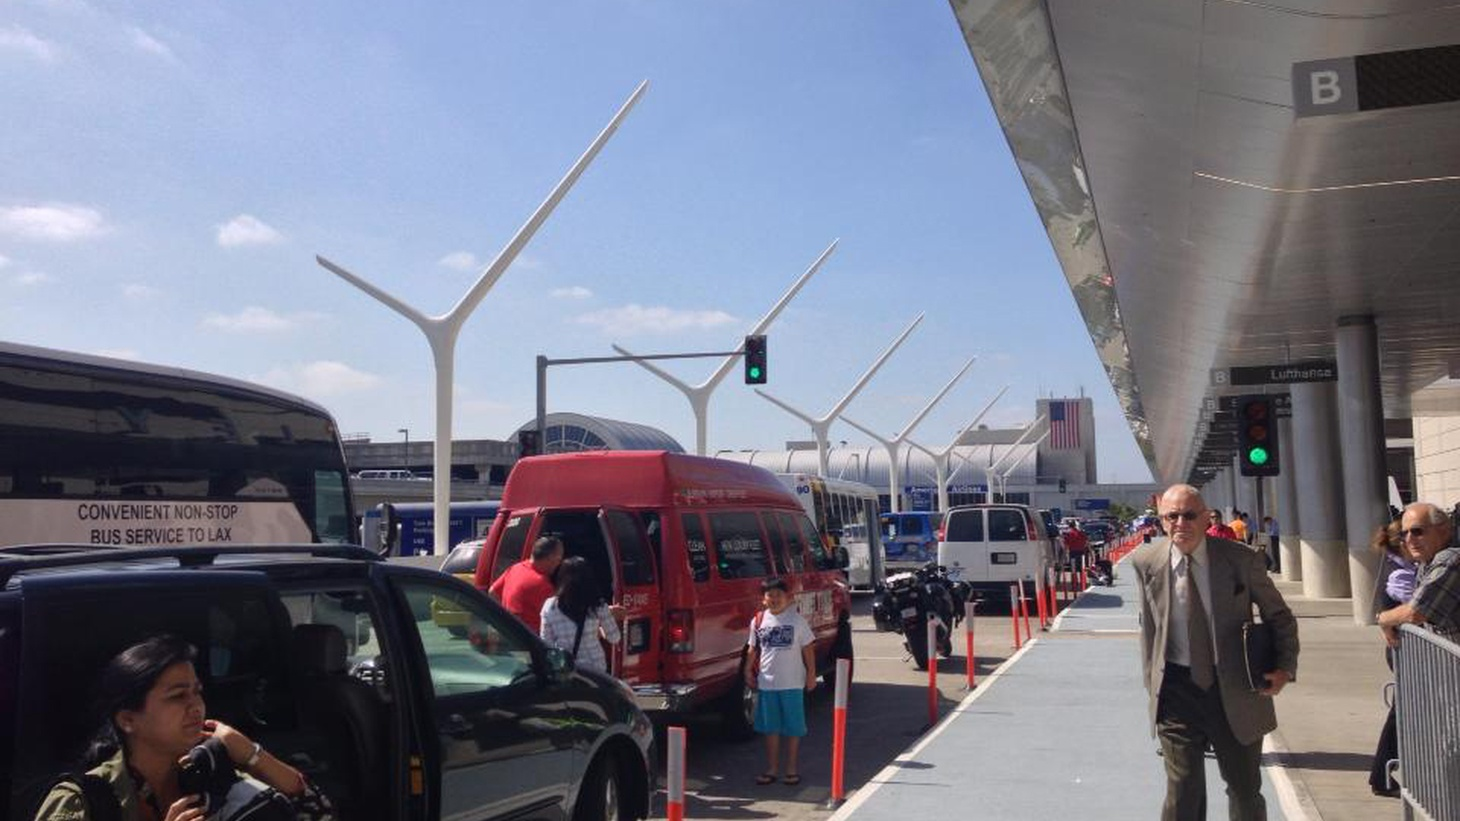 Drivers for Uber, Lyft and other ride-sharing companies are picking up passengers all over LA, but they're not allowed at the region's major traffic hub, LA International Airport. Mayor Garcetti says they should be able to operate there, too. But traditional taxis are hurting, and cheaper competition will increase the pain.